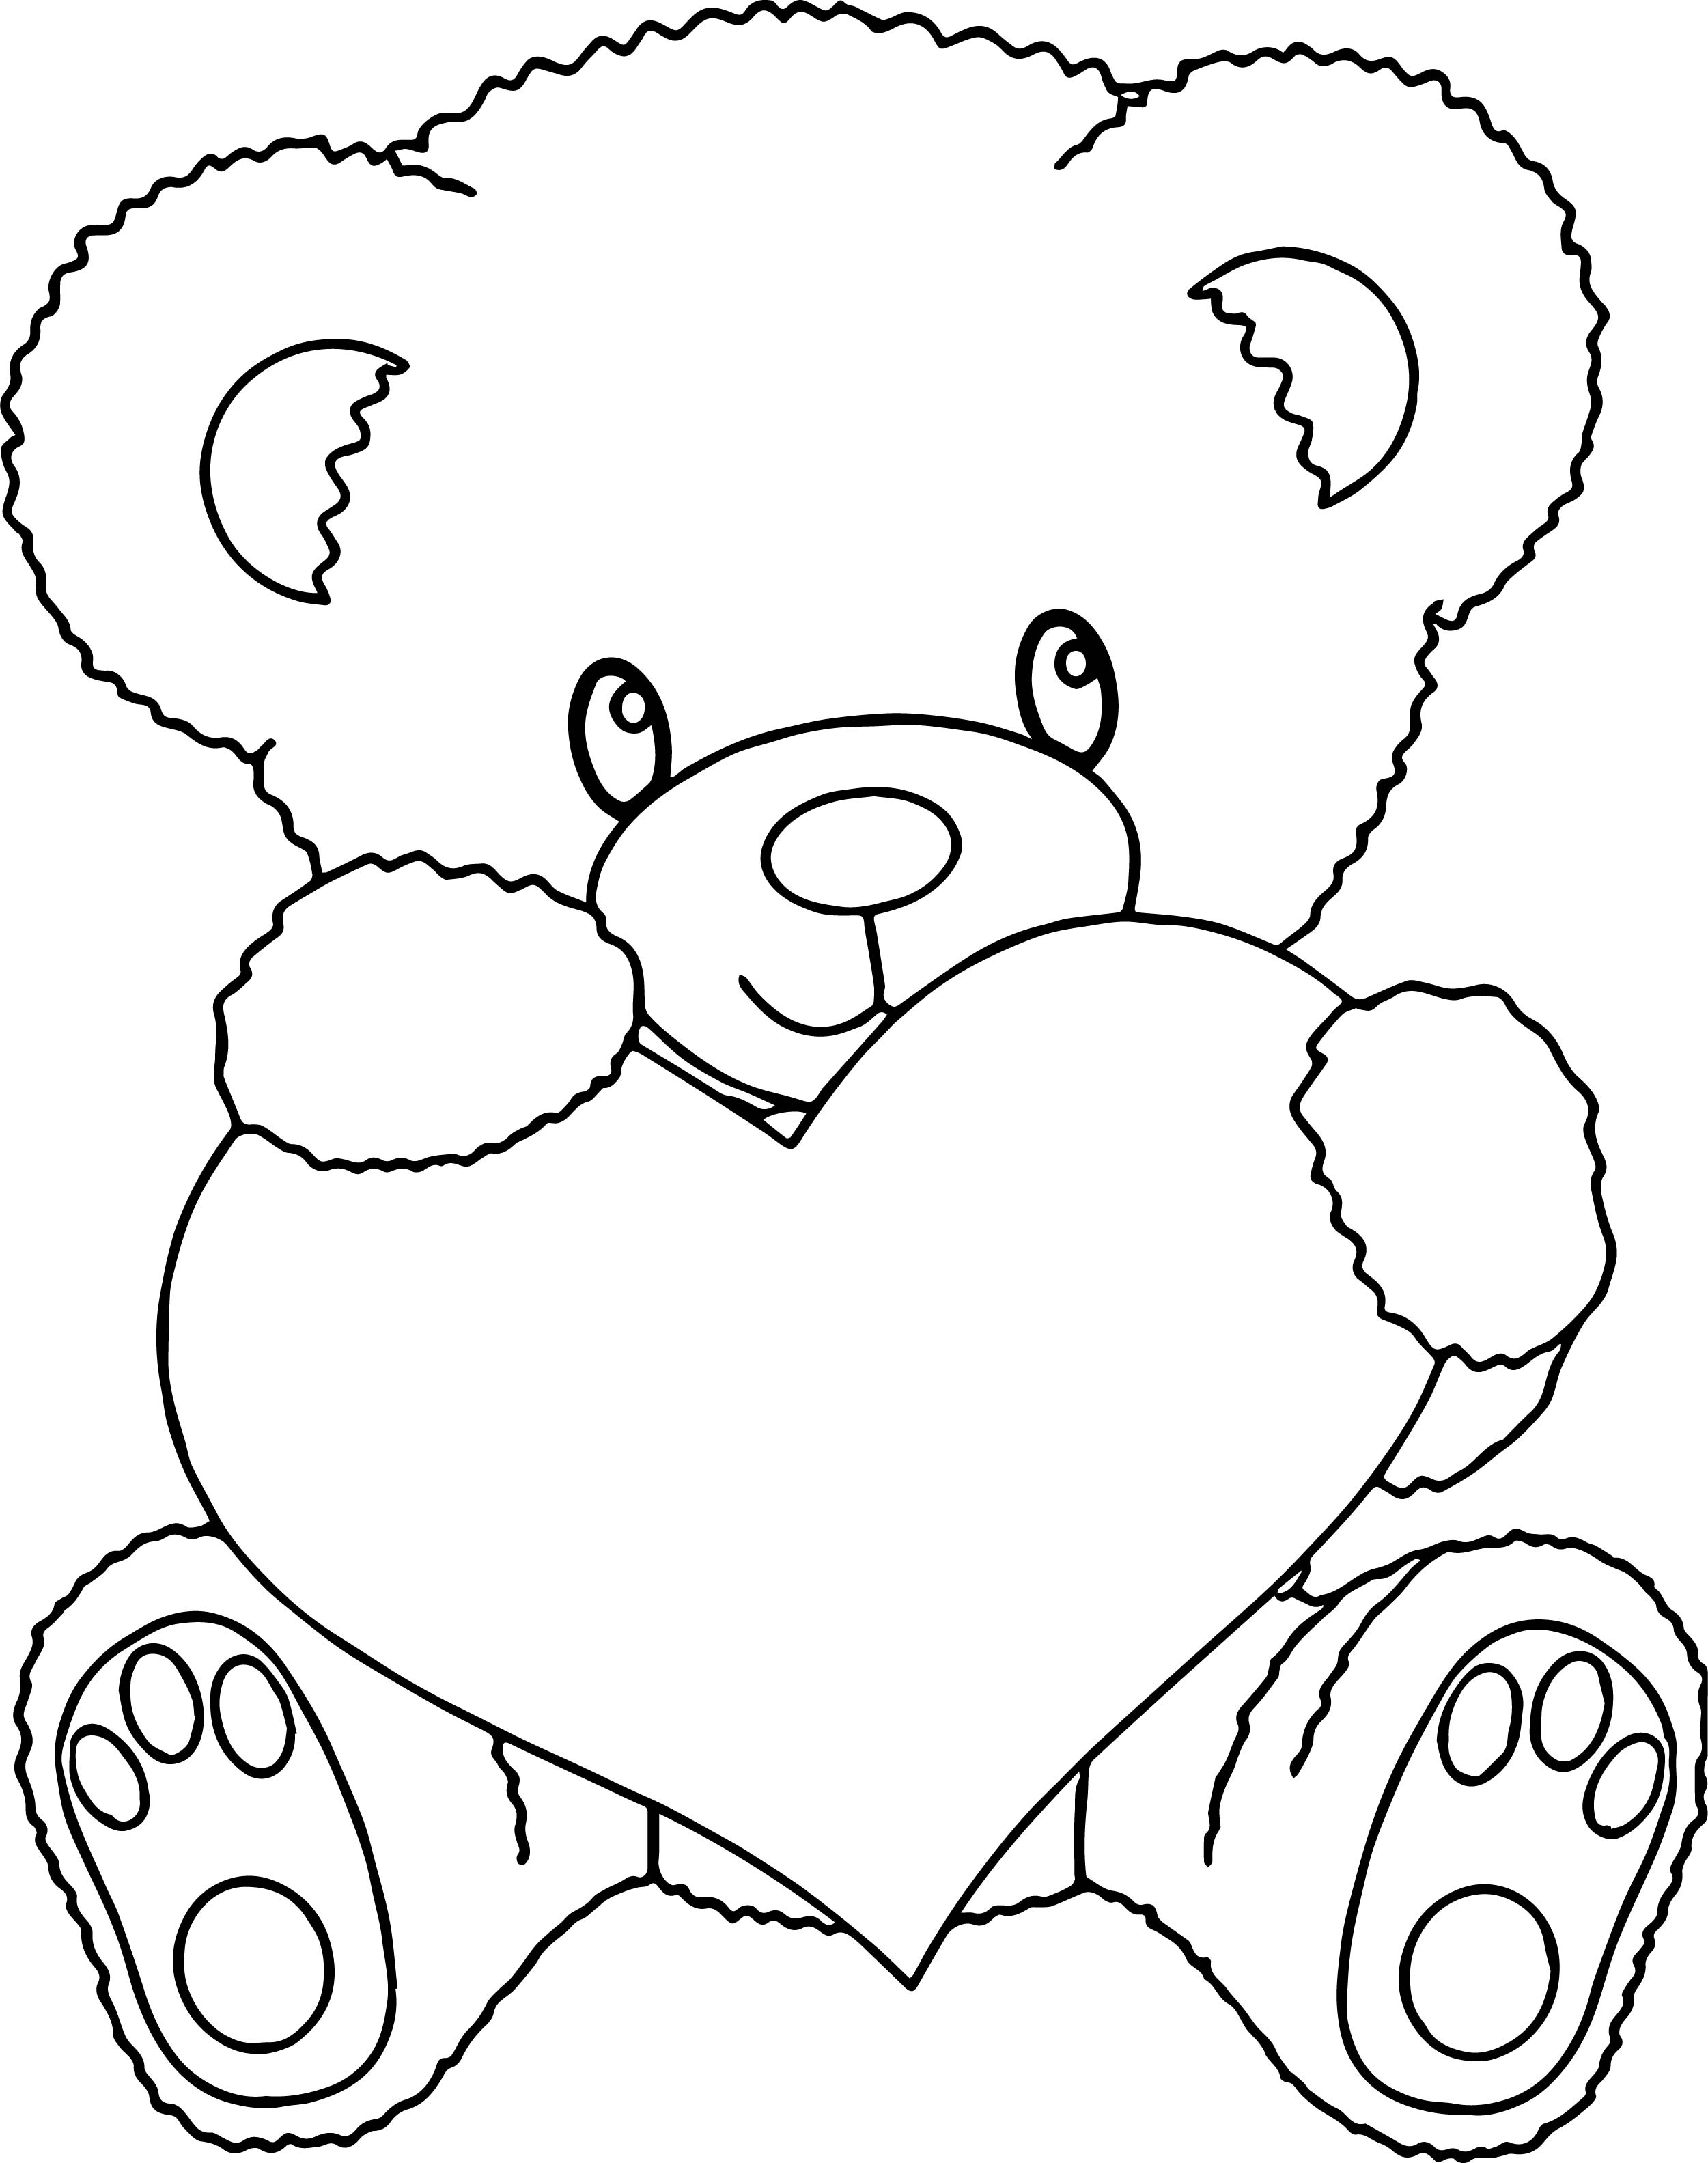 coloring pages for bears with hearts | Bear Holding Heart Coloring Page | Wecoloringpage.com